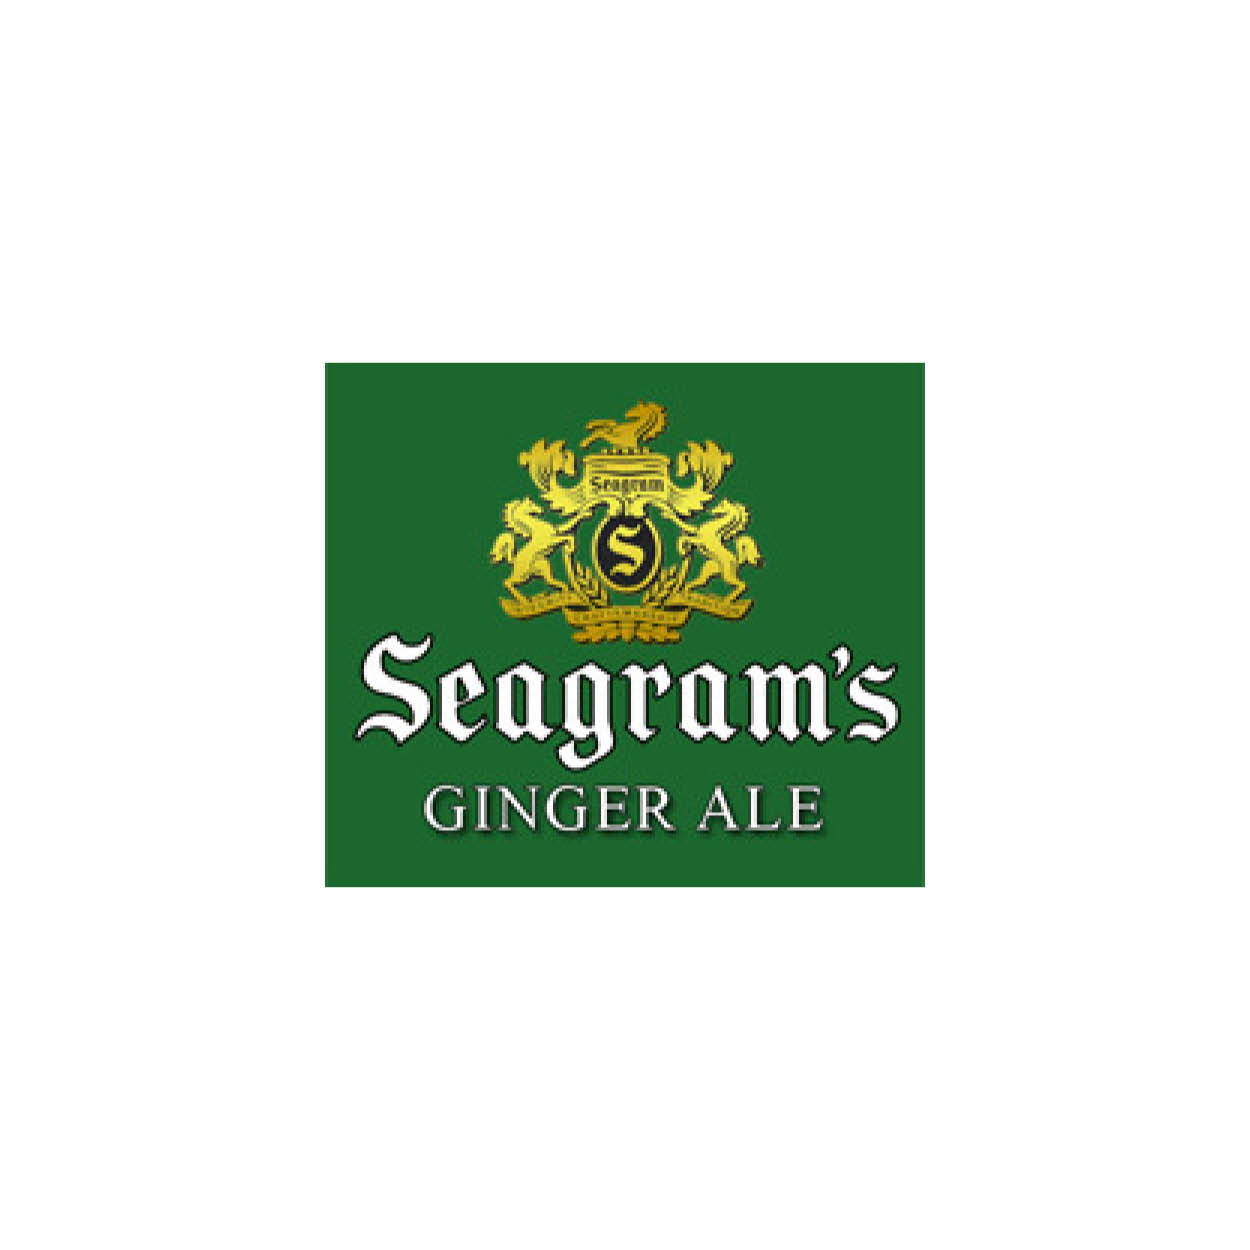 Seagram's Gingerale